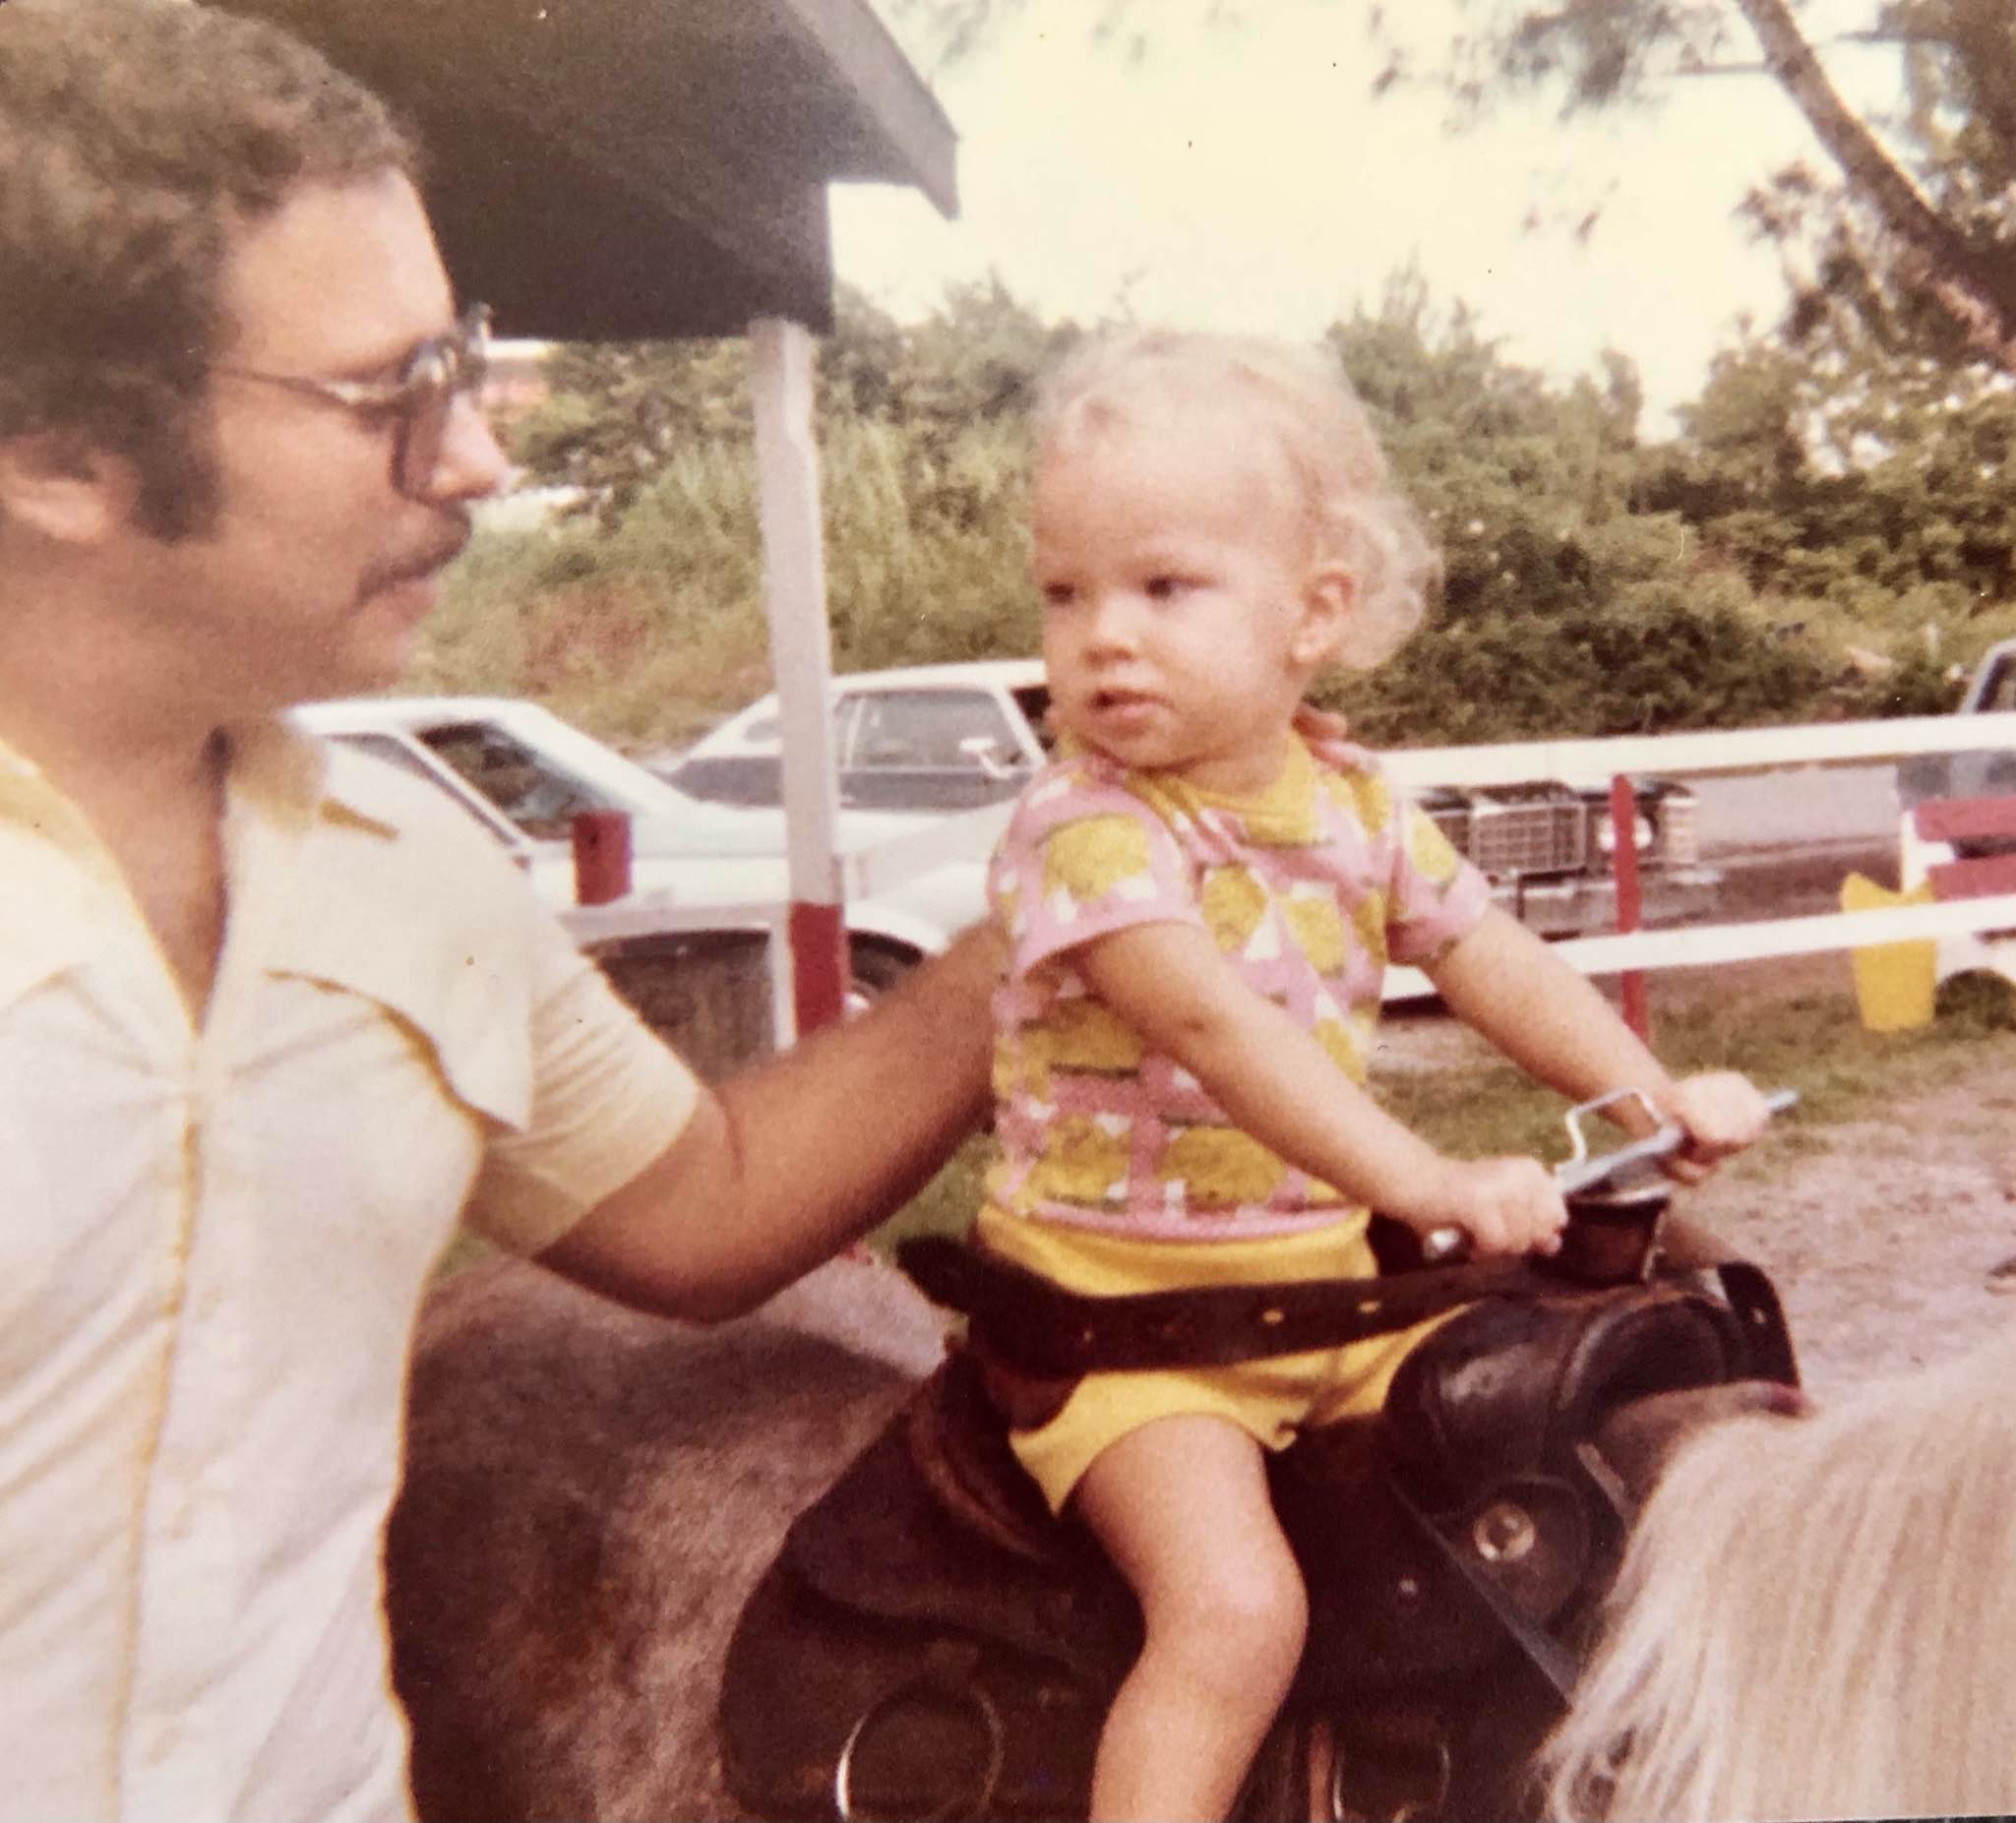 My father was the closest person to me.